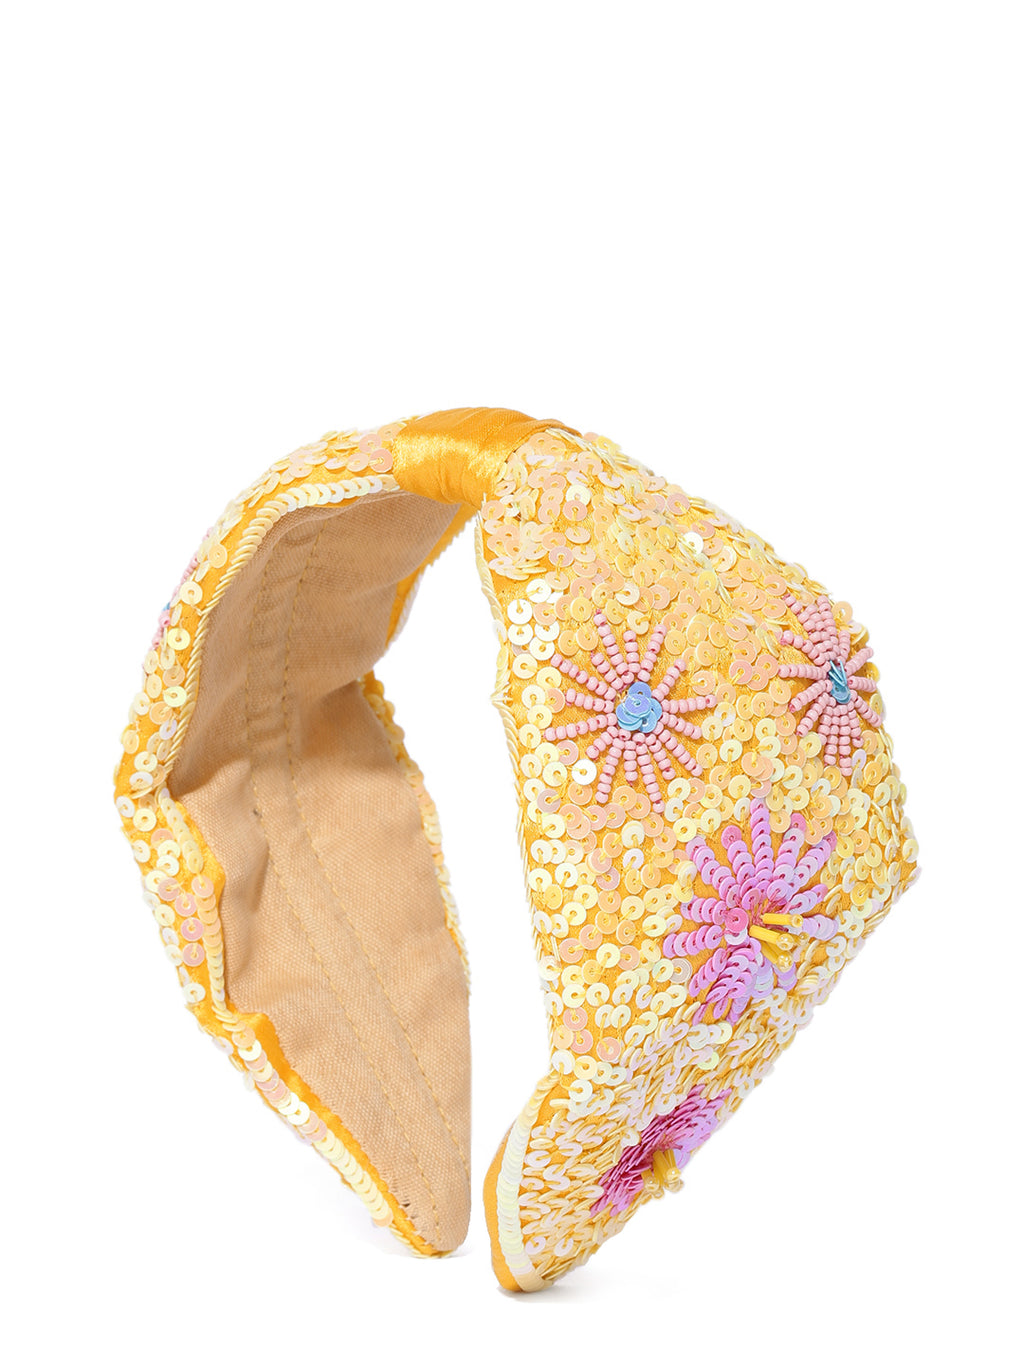 Blueberry yellow and pink sequin embellished satin knot hair band